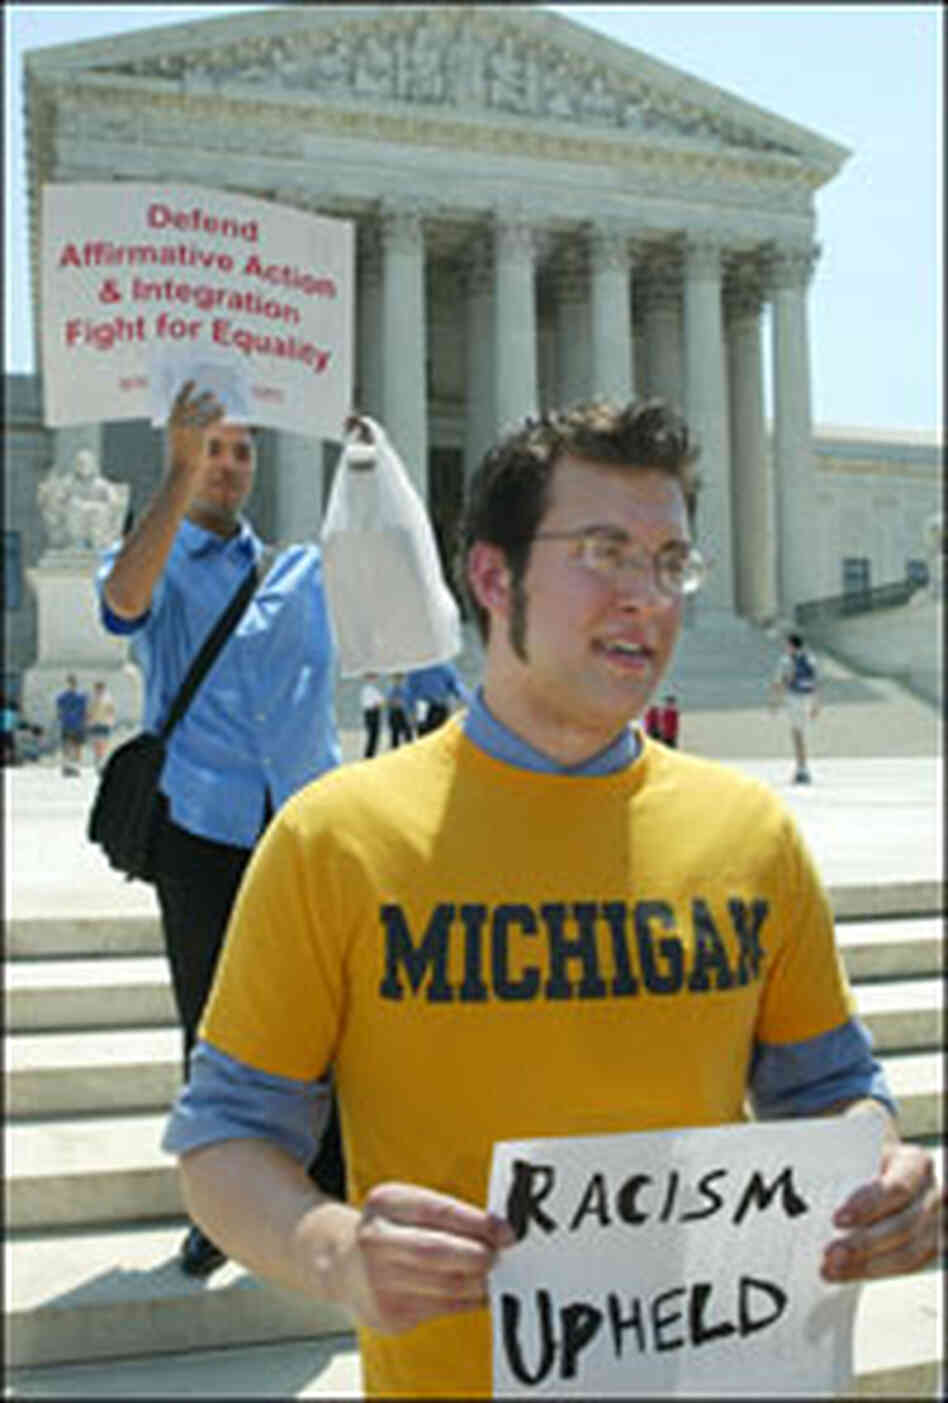 College students hold signs outside the U.S. Supreme Court.